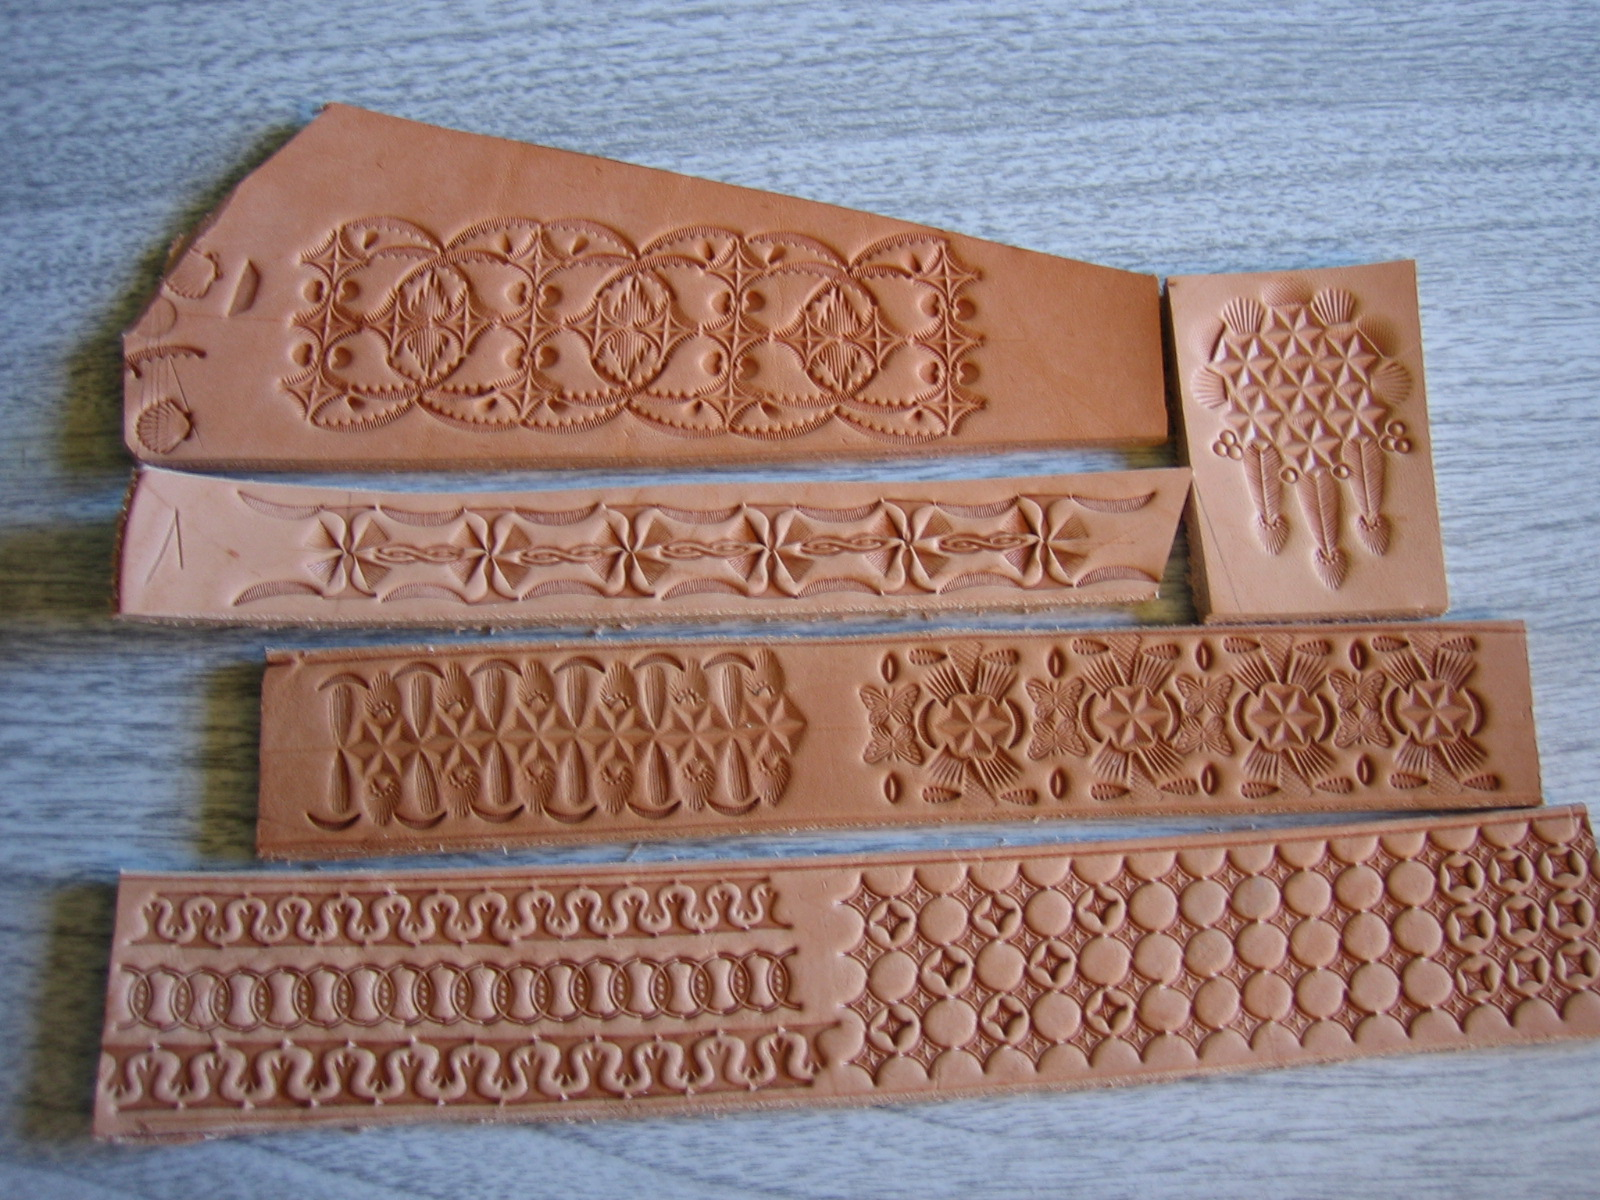 File:Stamping on Leather.jpg - Wikipedia